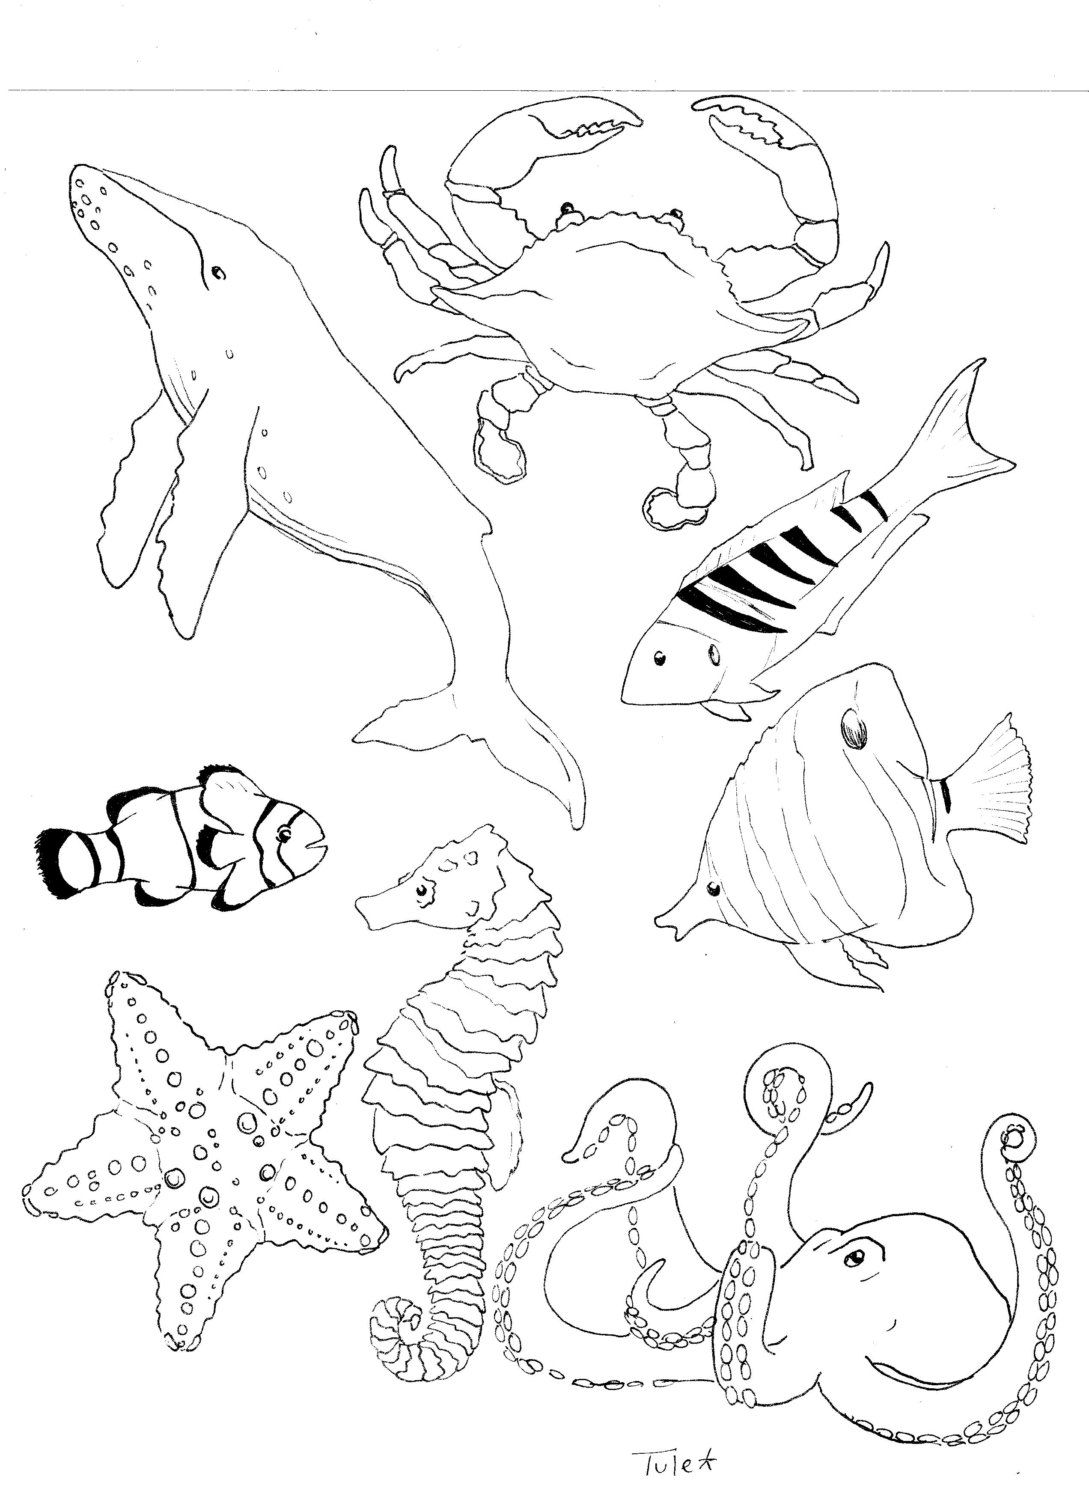 0cean coloring pages - Ocean Life Coloring Book Page By Sarahtuleartworks On Etsy